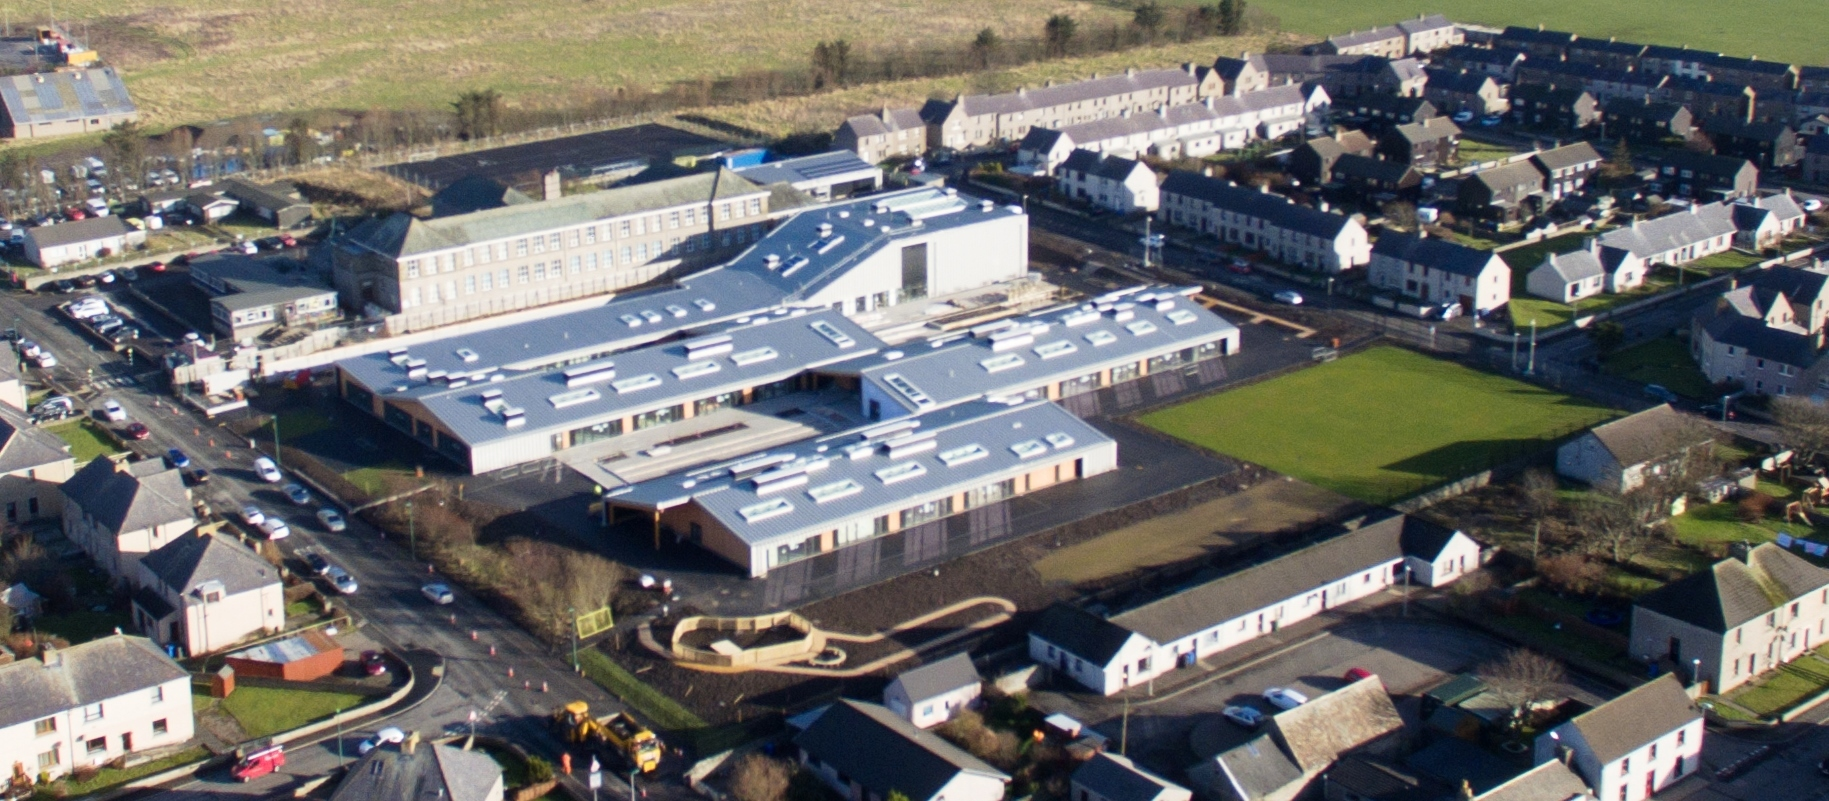 An aerial view of the new Noss Primary School